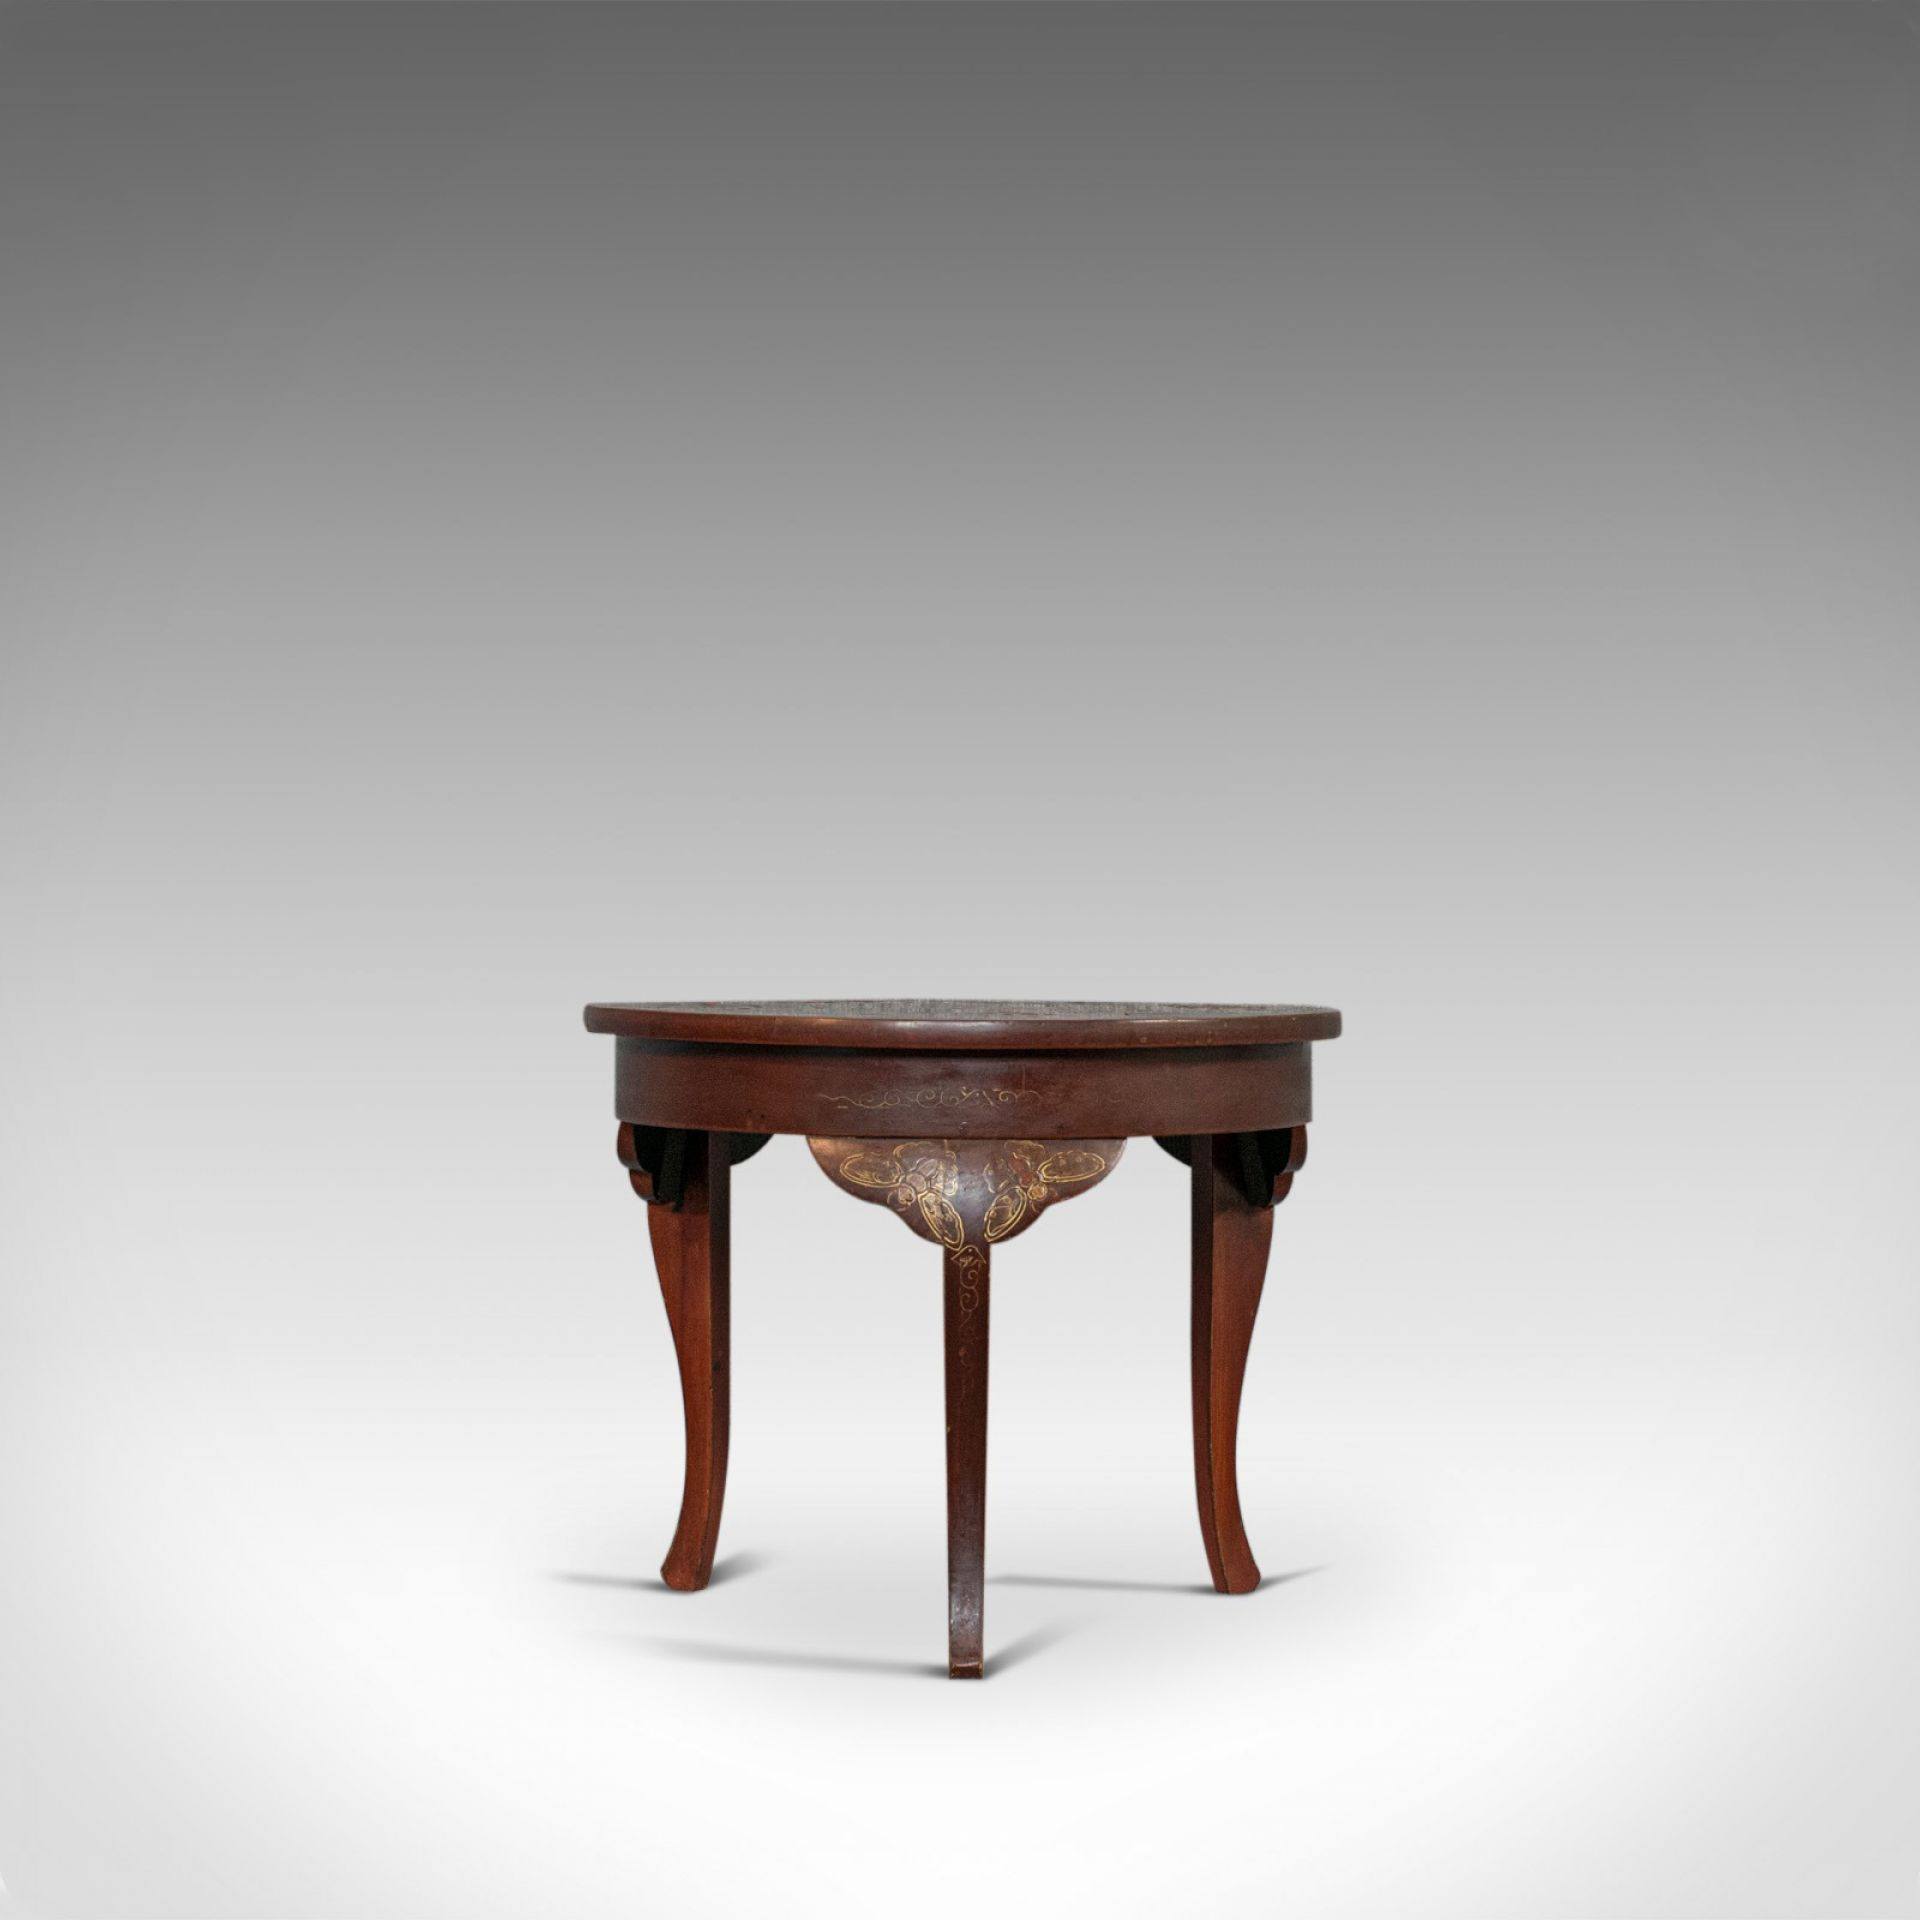 Vintage Side Table, Chinoiserie, English, Chinese Elm, Occasional, Lamp, C.1930